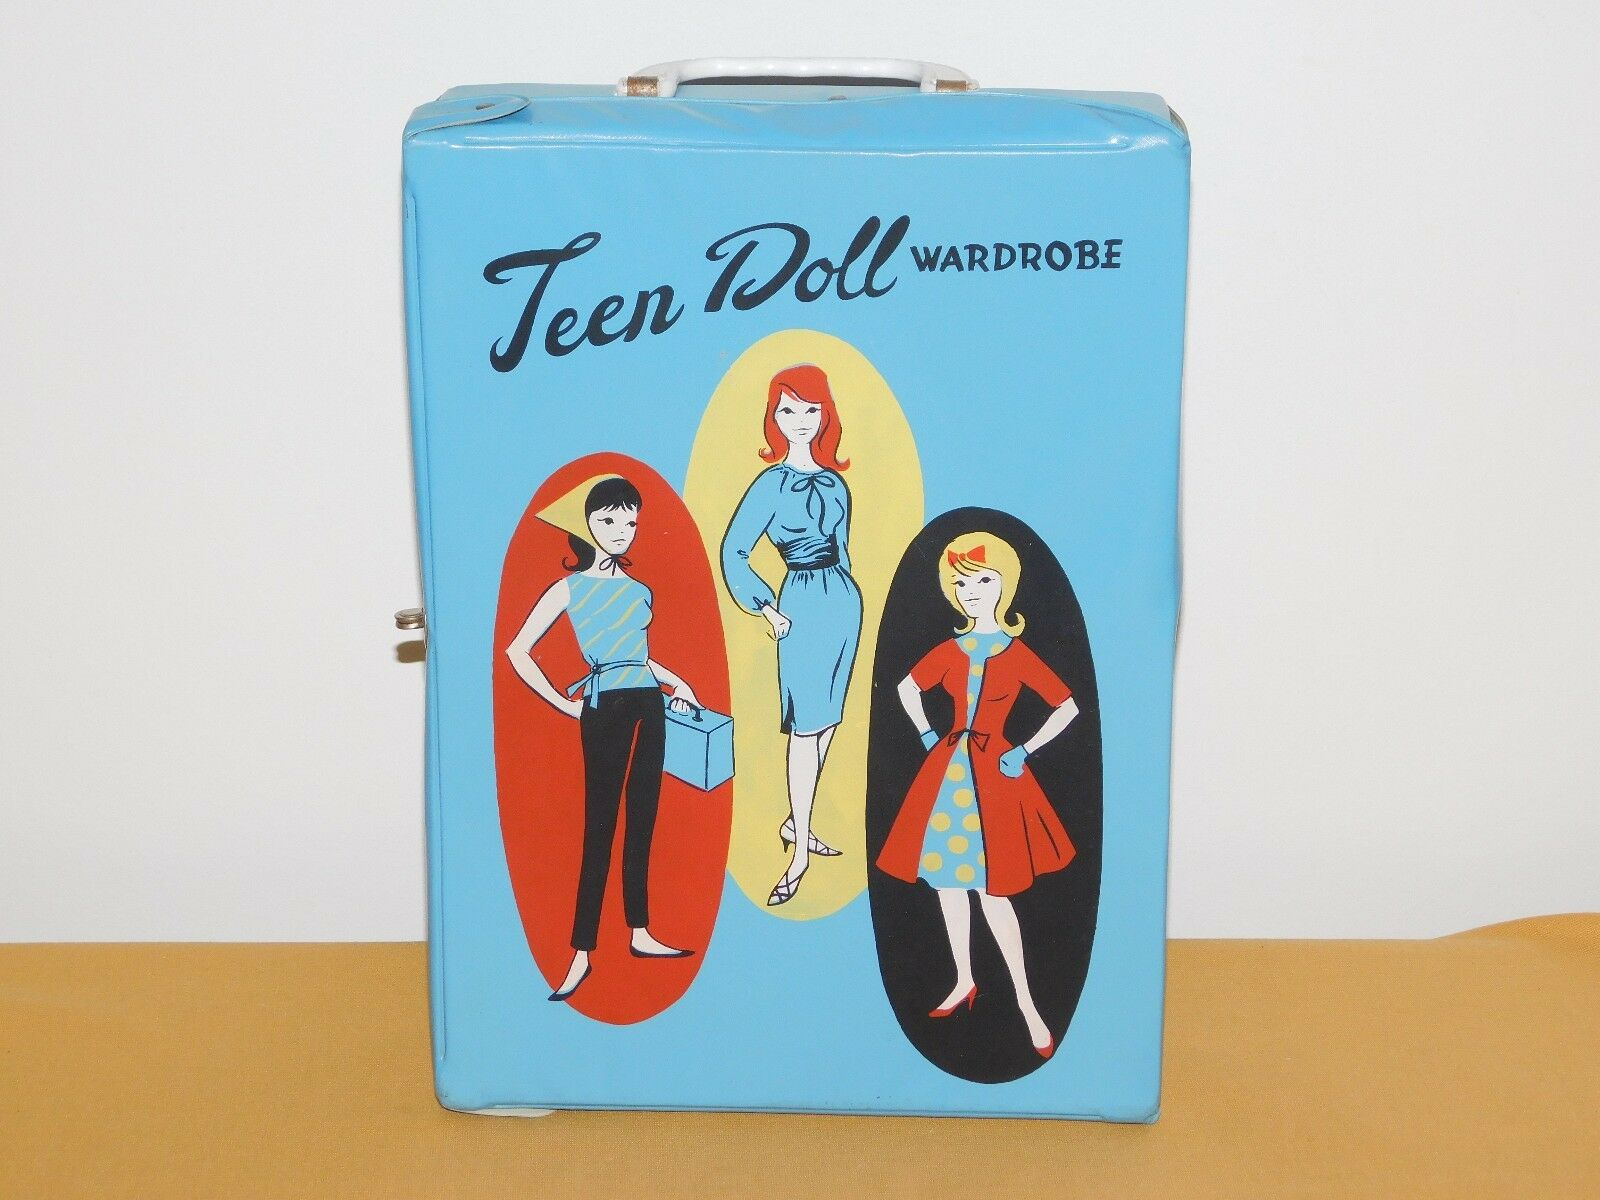 VINTAGE TOY blueE TEEN DOLL WARDROBE  PLASTIC CARRYING CASE